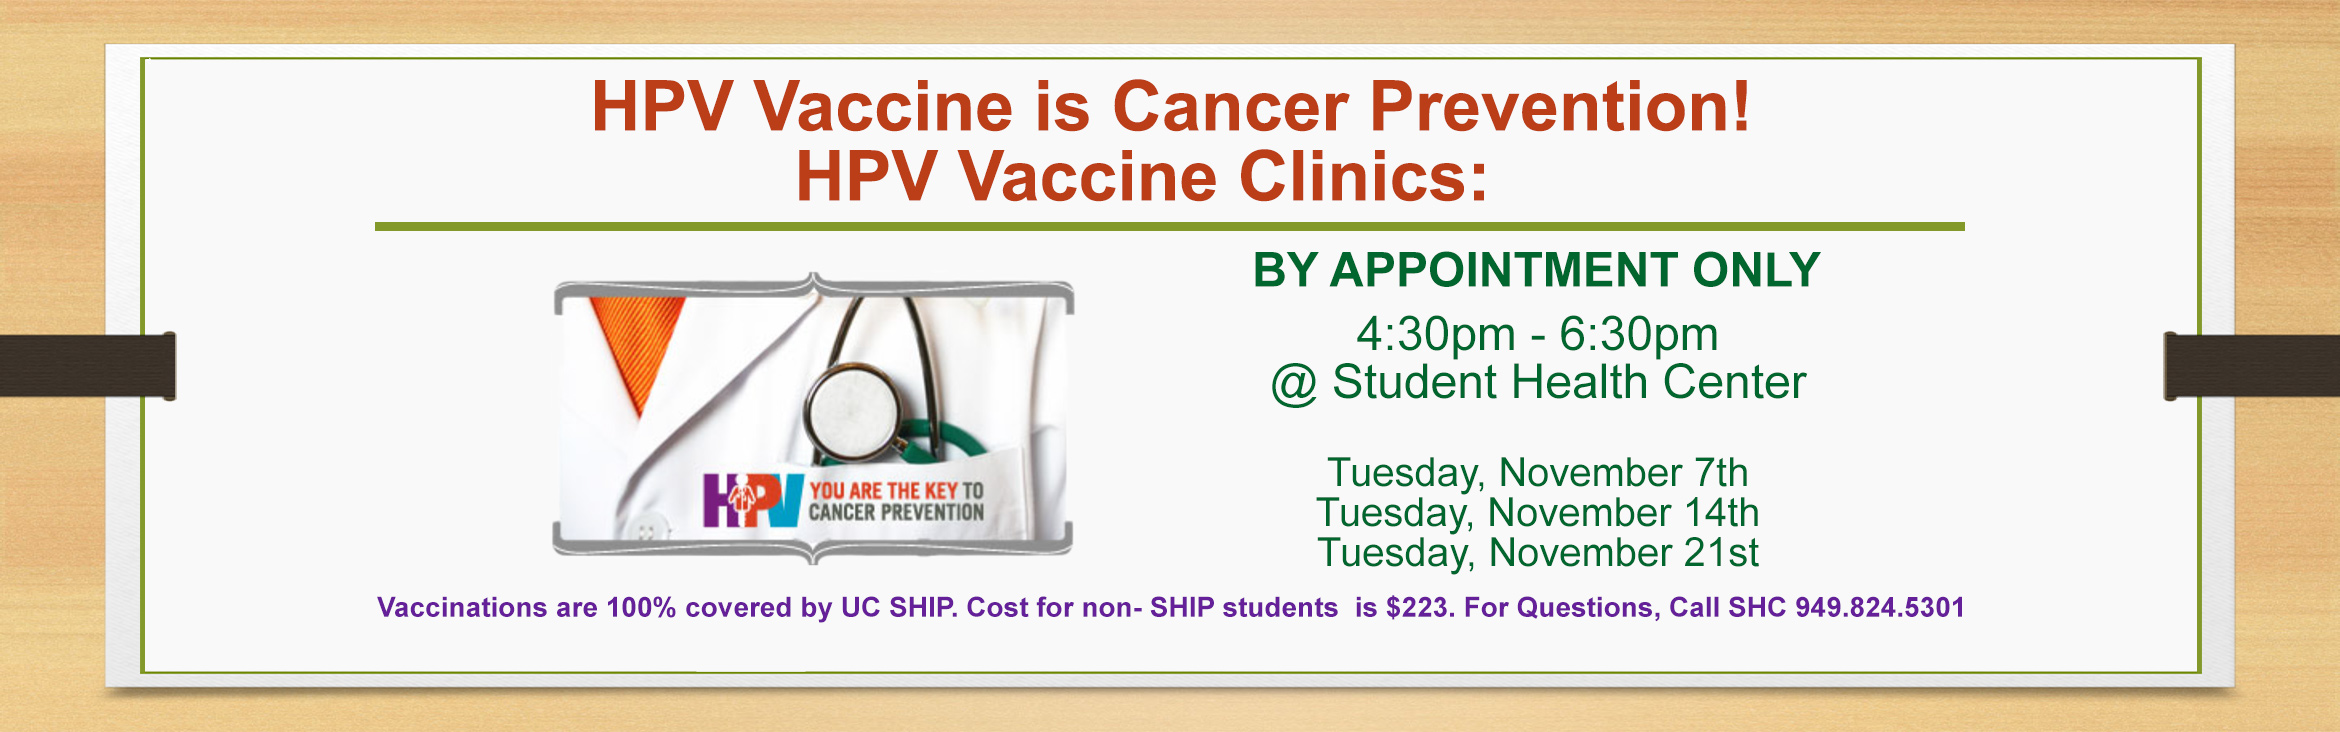 HPV Vaccine is Cancer Prevention! HPV Vaccine Clinics BY APPOINTMENT ONLY from 4:30pm - 6:30pm @ Student Health Center: Tuesday, November 7th, Tuesday, November 14th, Tuesday, November 21st